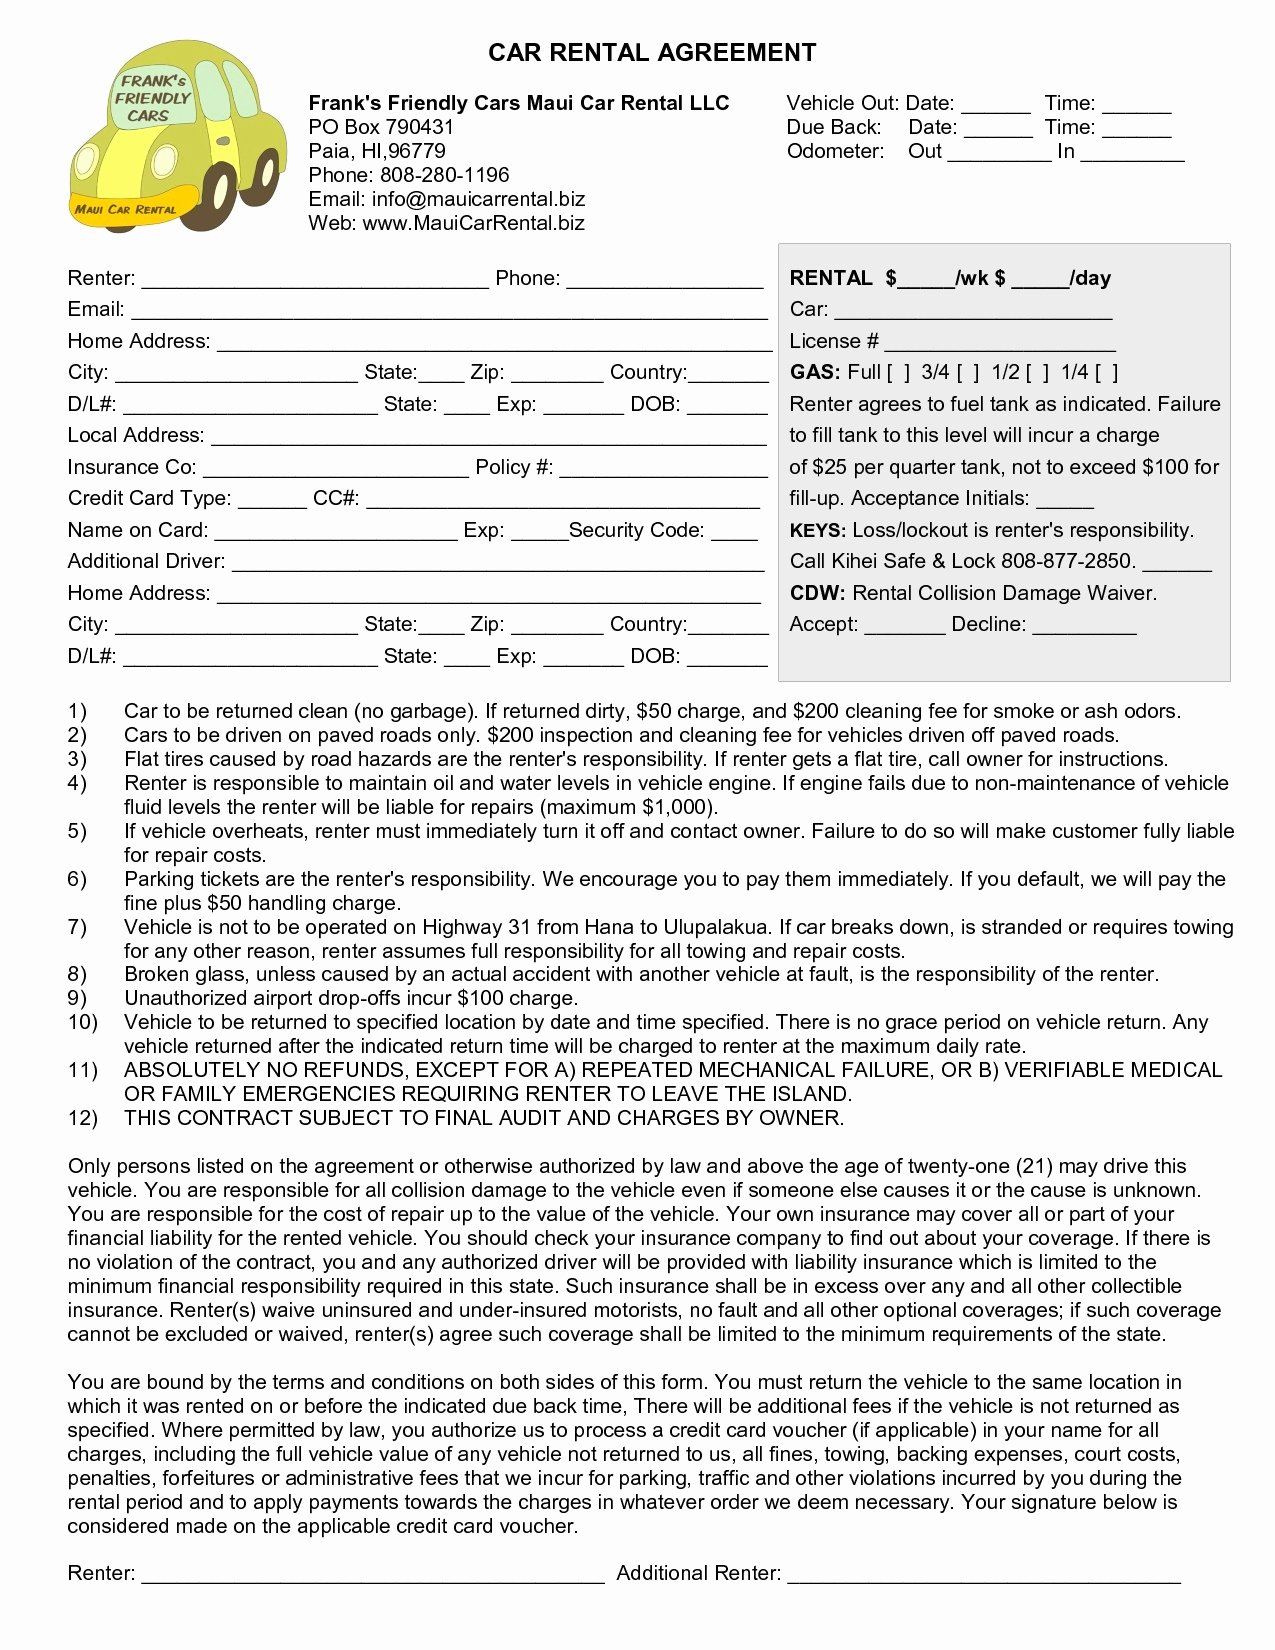 Vehicle Lease Agreement Pdf New 36 Regular Sample Car Rental Agreement form Le W7501